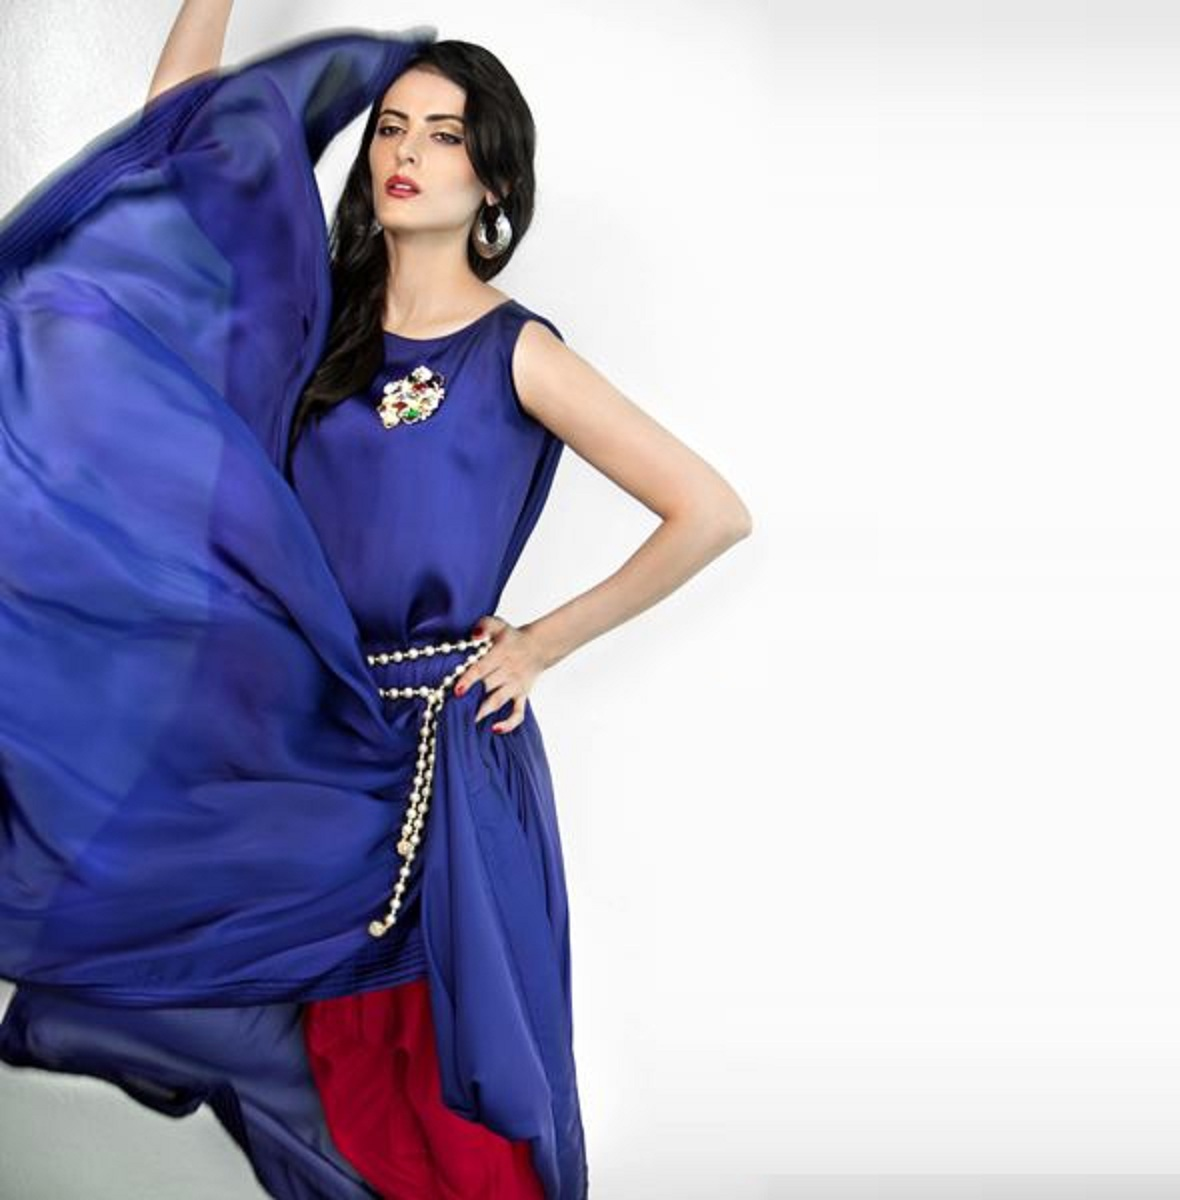 Mandana Karimi desktop free hd wallpapers | Wallpapers Wide Free